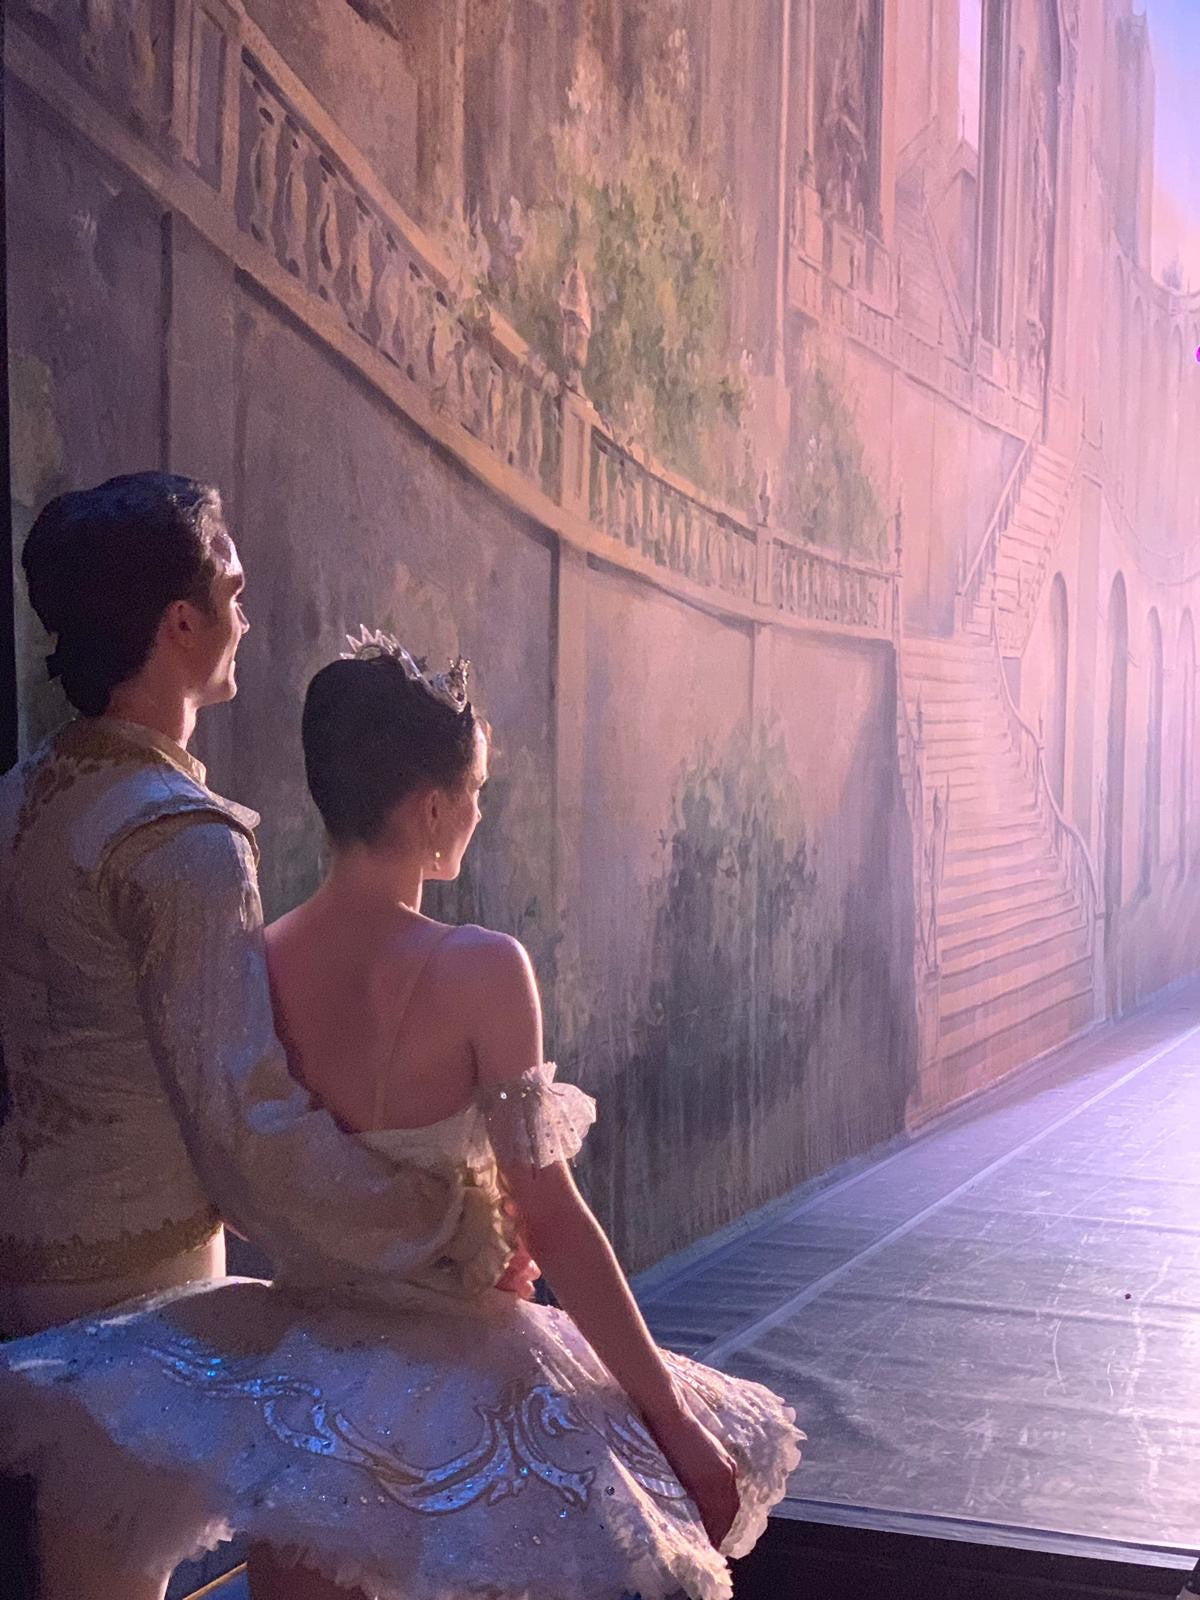 Ballet dancer Anna Rose O'Sullivan waiting in the wings with her partner Matthew Ball to go on stage and perform her debut show